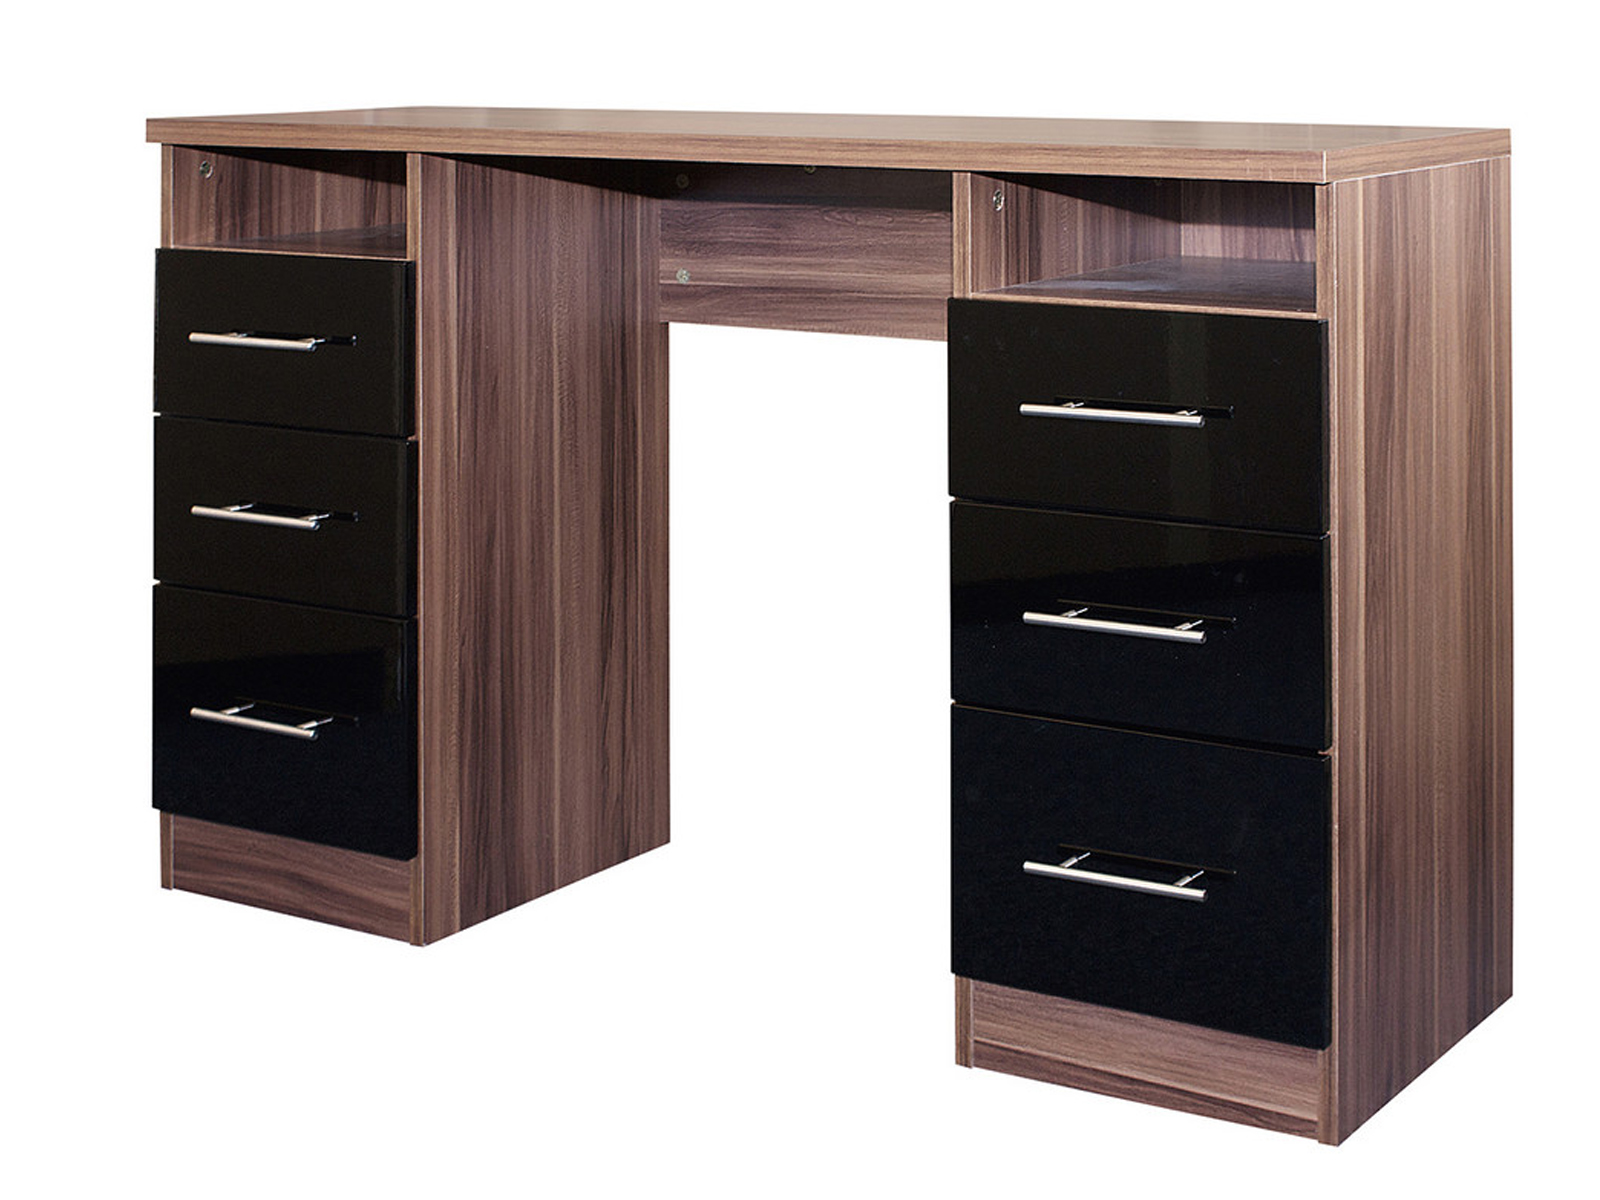 Modular Dressing Table 6 Drawers High Gloss Black Walnut Stunning Range